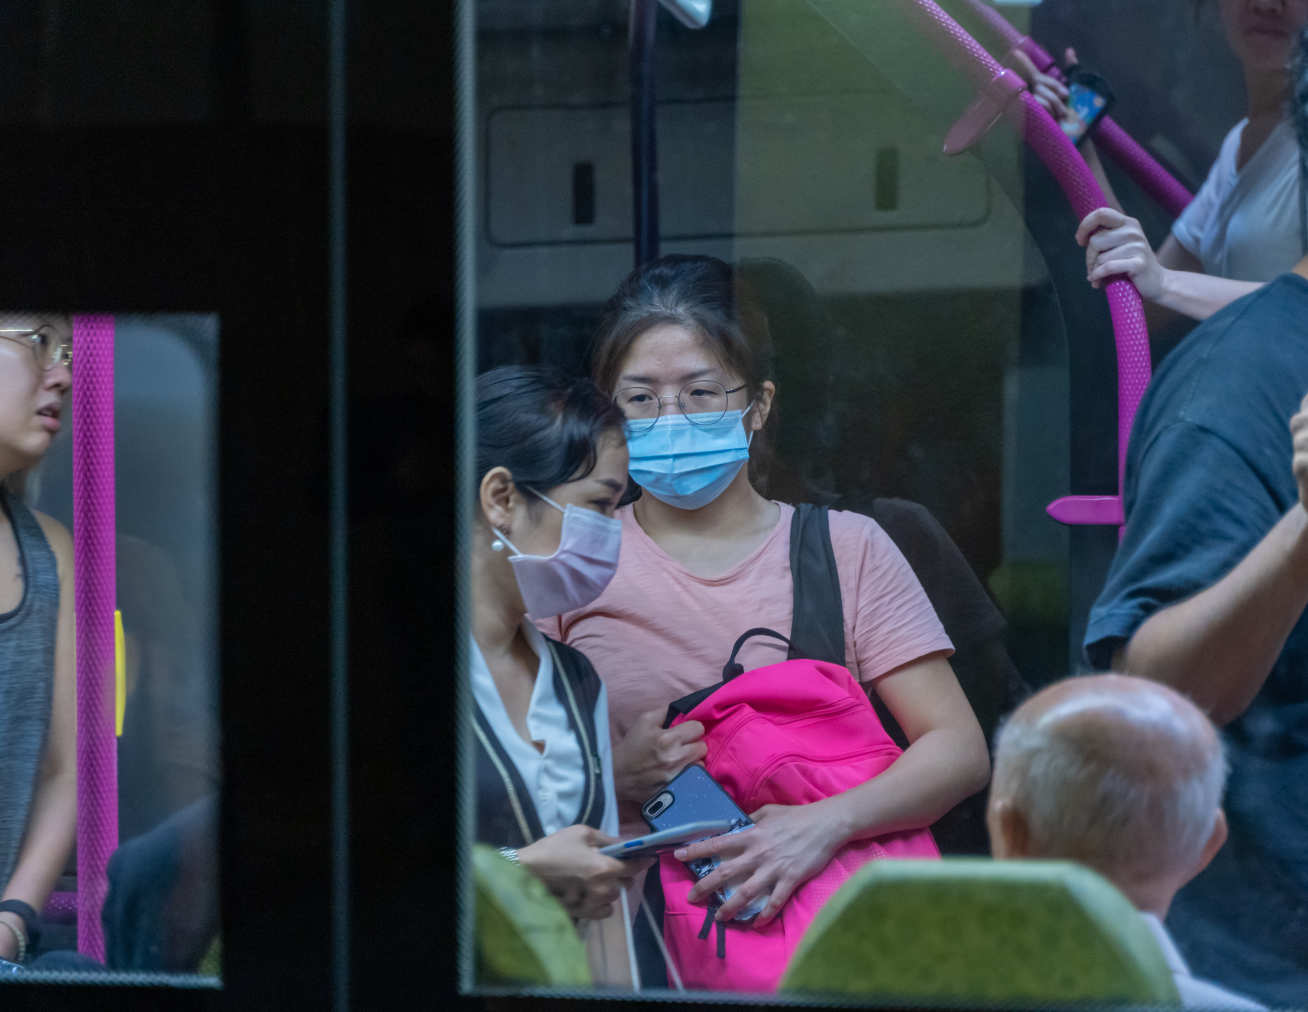 people wearing masks in the bus. social distancing